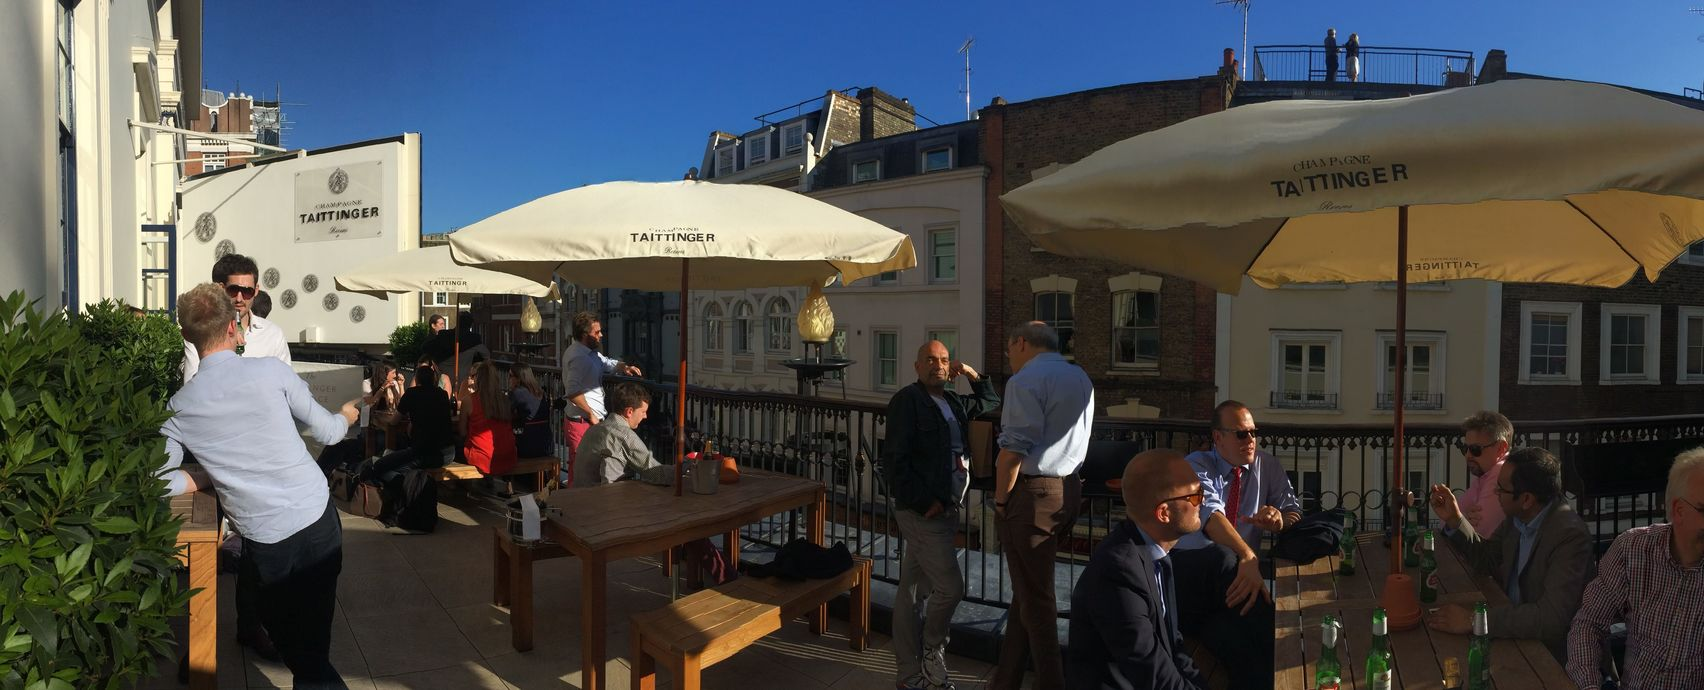 Taittinger Terrace, Theatre Royal Drury Lane